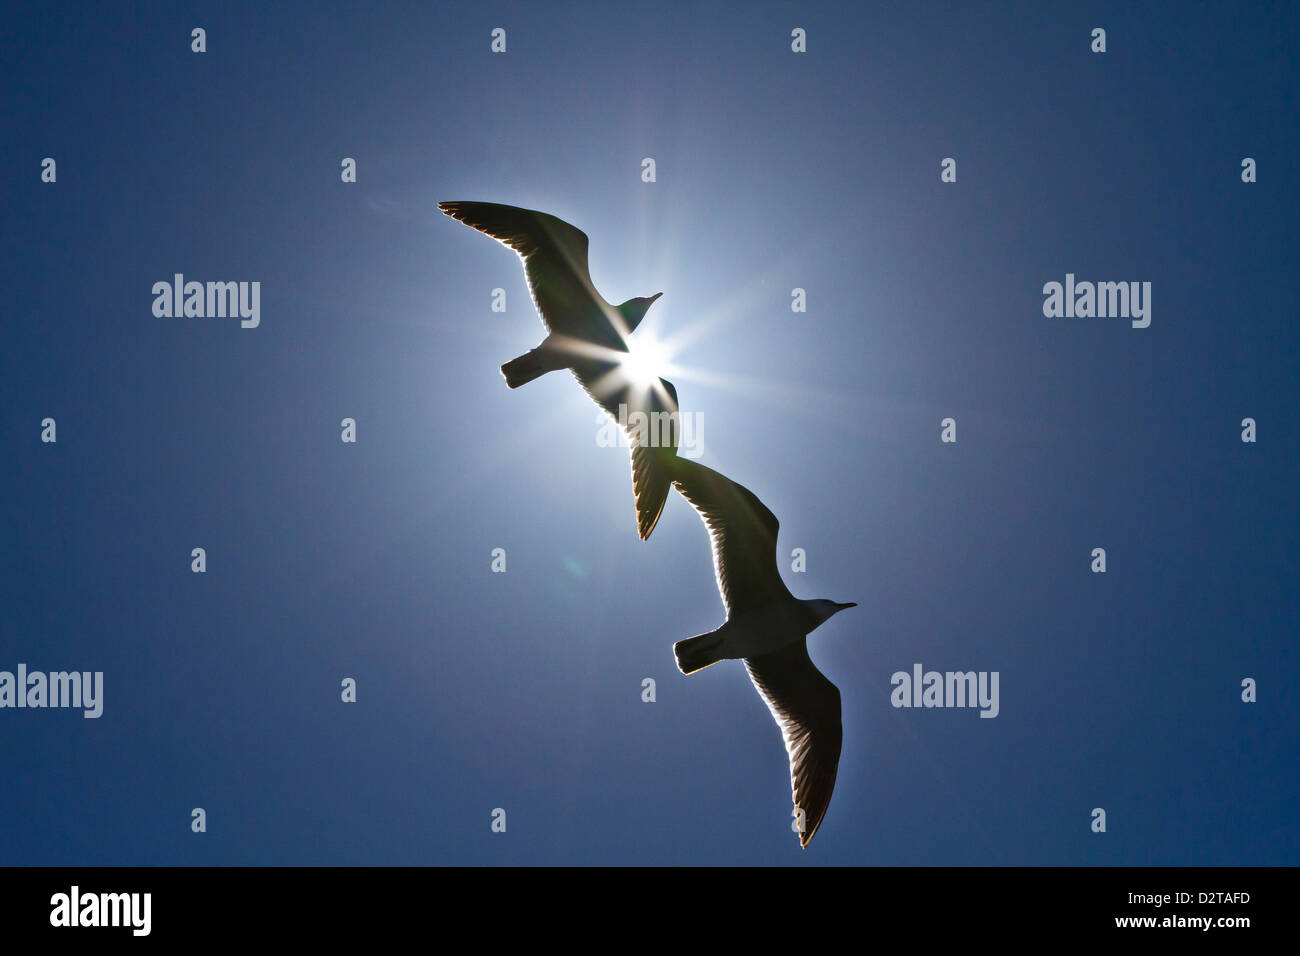 Heermann's gulls (Larus heermanni), Isla Rasa, Gulf of California (Sea of Cortez), Mexico, North America - Stock Image